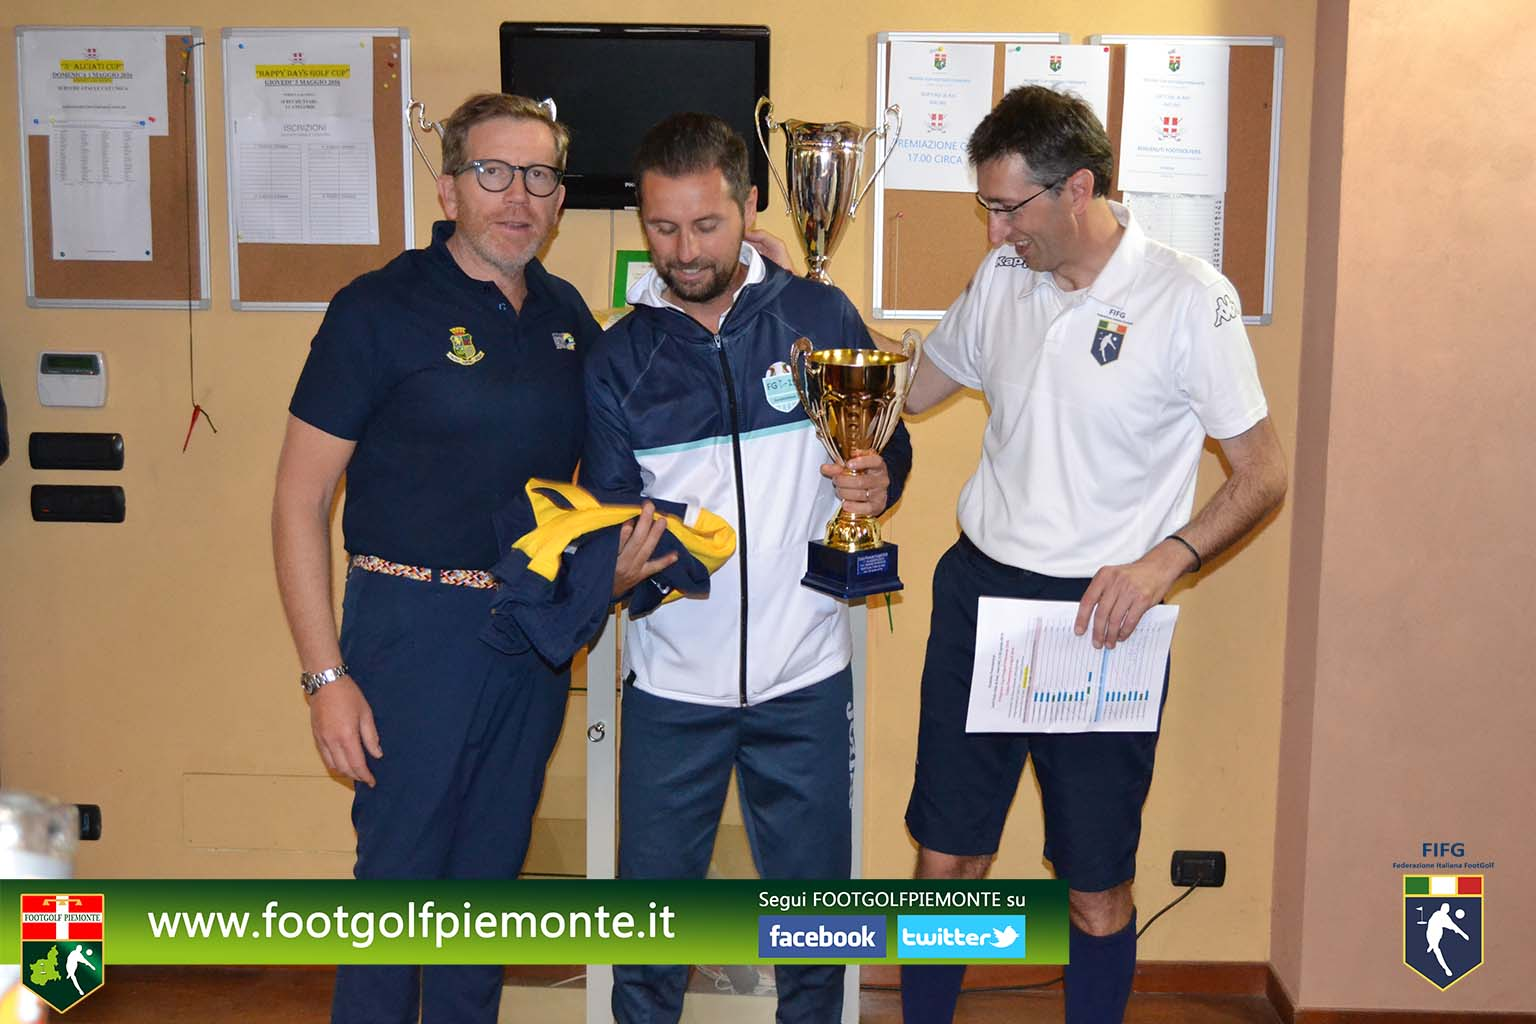 FOTO 9 Regions' Cup Footgolf Piemonte 2016 Golf Città di Asti (At) 30apr16-134